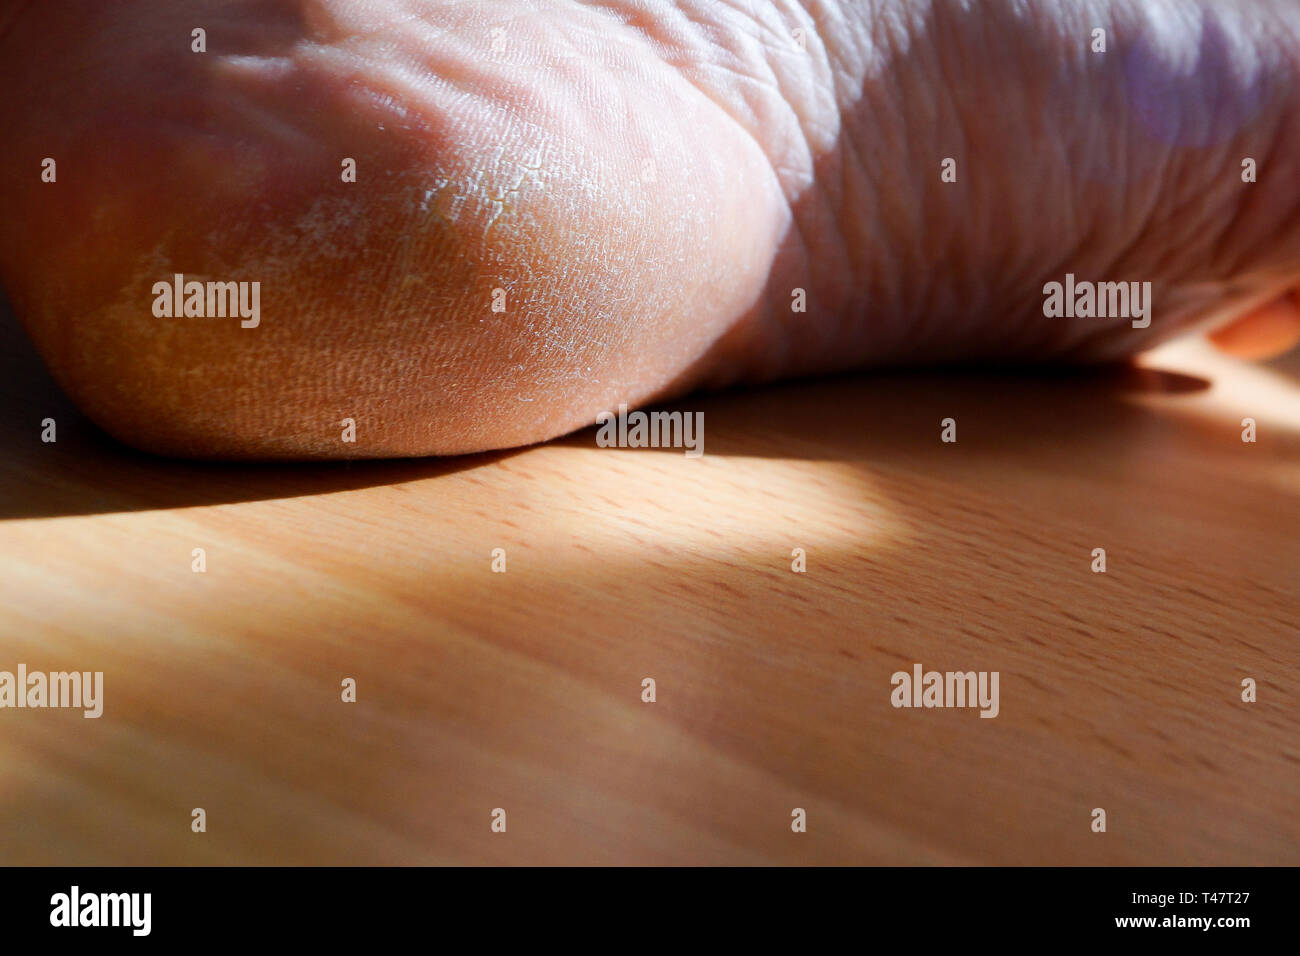 Closeup image of a heel on the foot with a white callus. Image for medical purposes. - Stock Image